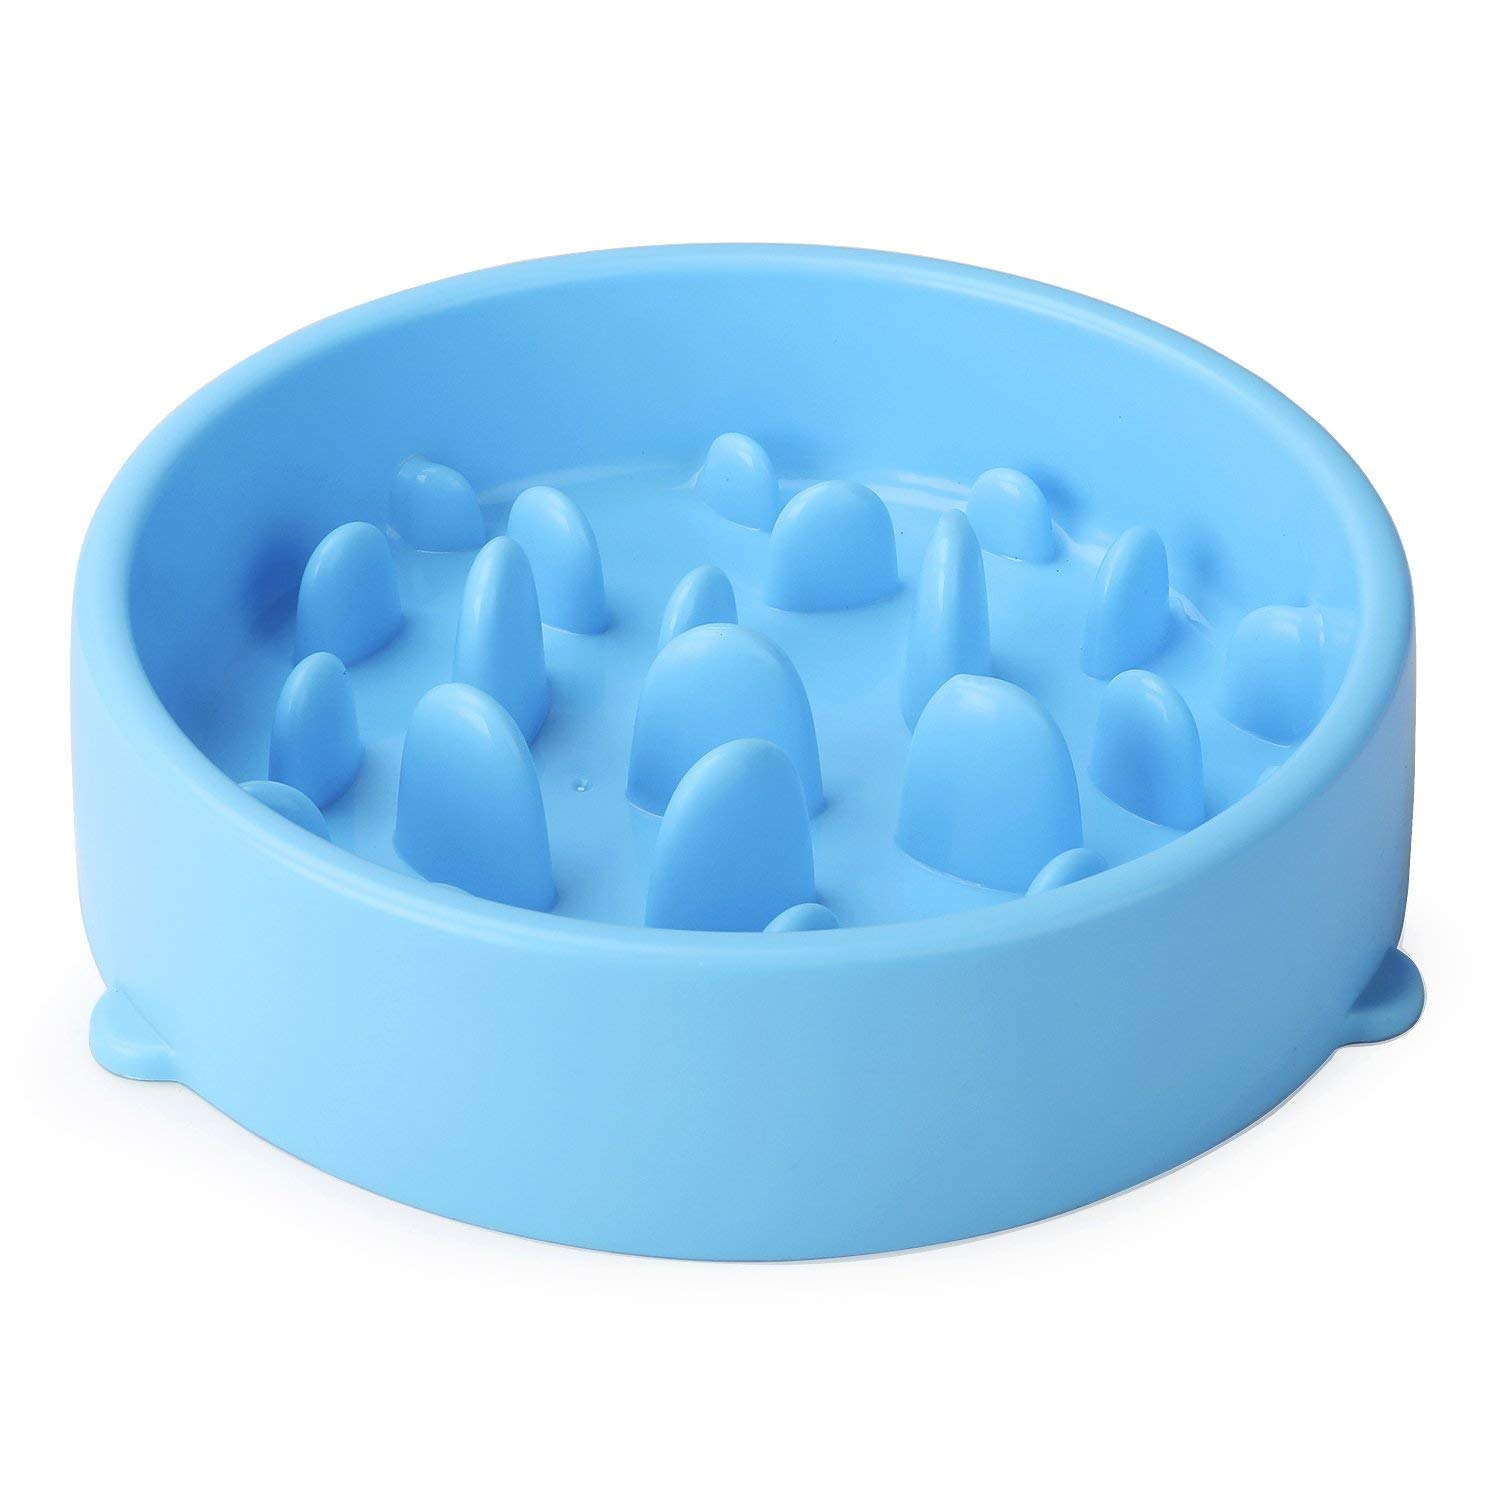 bluee Dog Feeder Slow Eating Non-Slip Pet Bowl Eco-Friendly Durable Non-Toxic Preventing Choking Healthy Design Bowl for Dog Pet